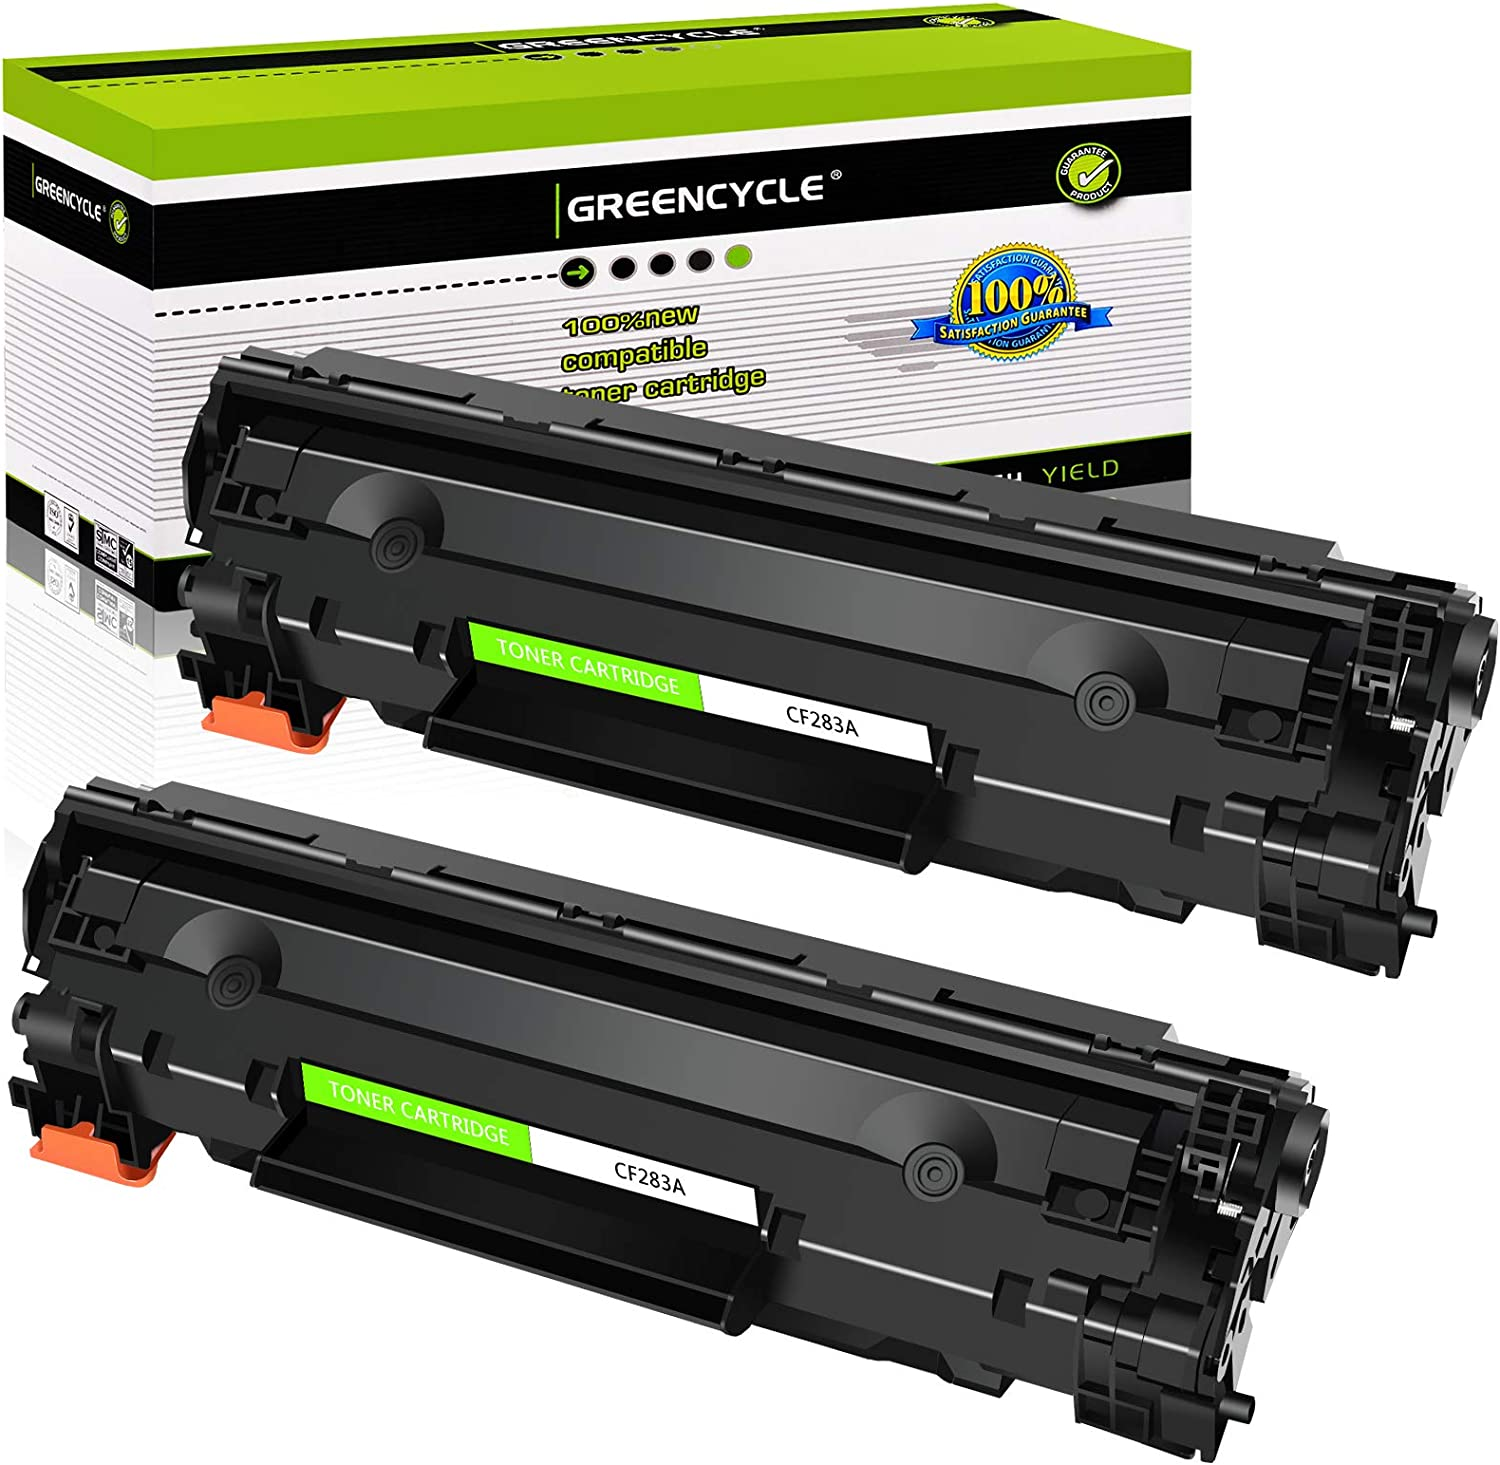 GREENCYCLE Compatible CF283A 83A Laser Toner Cartridge Replacement for Laserjet Pro MFP M125a M225dn M201n M127fn Printer (Black, 2 Pack)